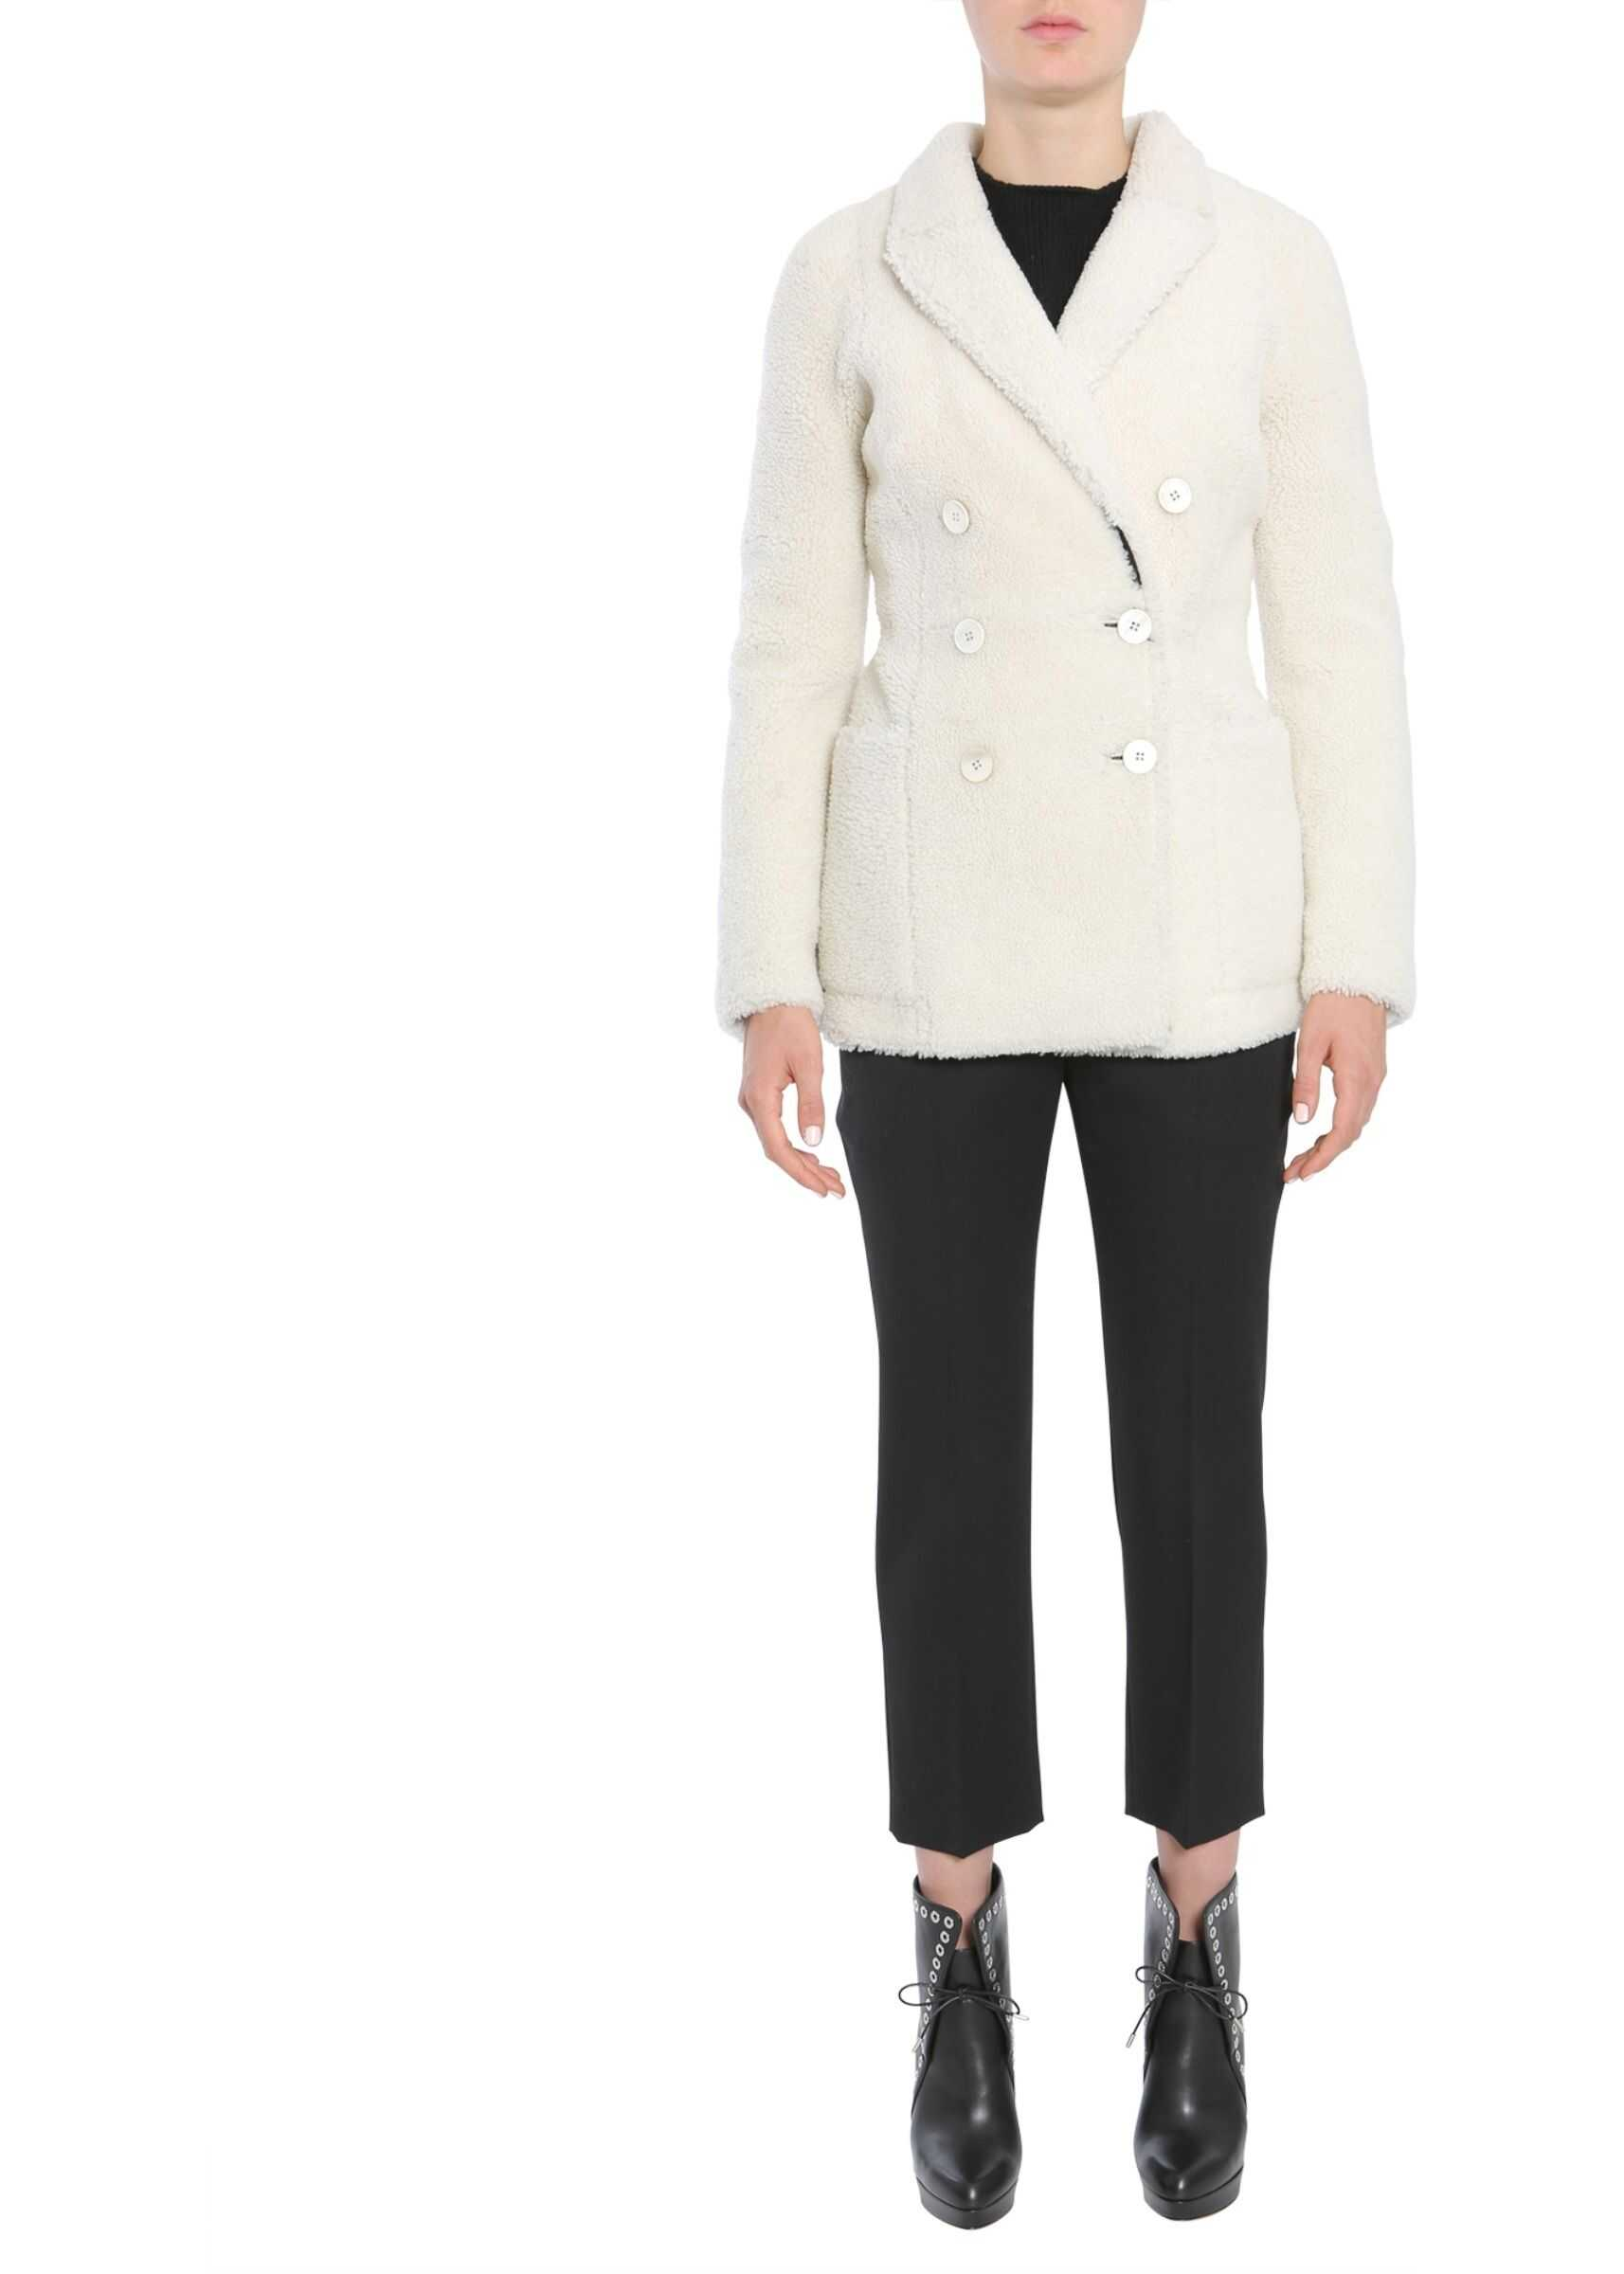 Alexander McQueen Double Breasted Coat 484229_Q5HLL.9213 WHITE image0